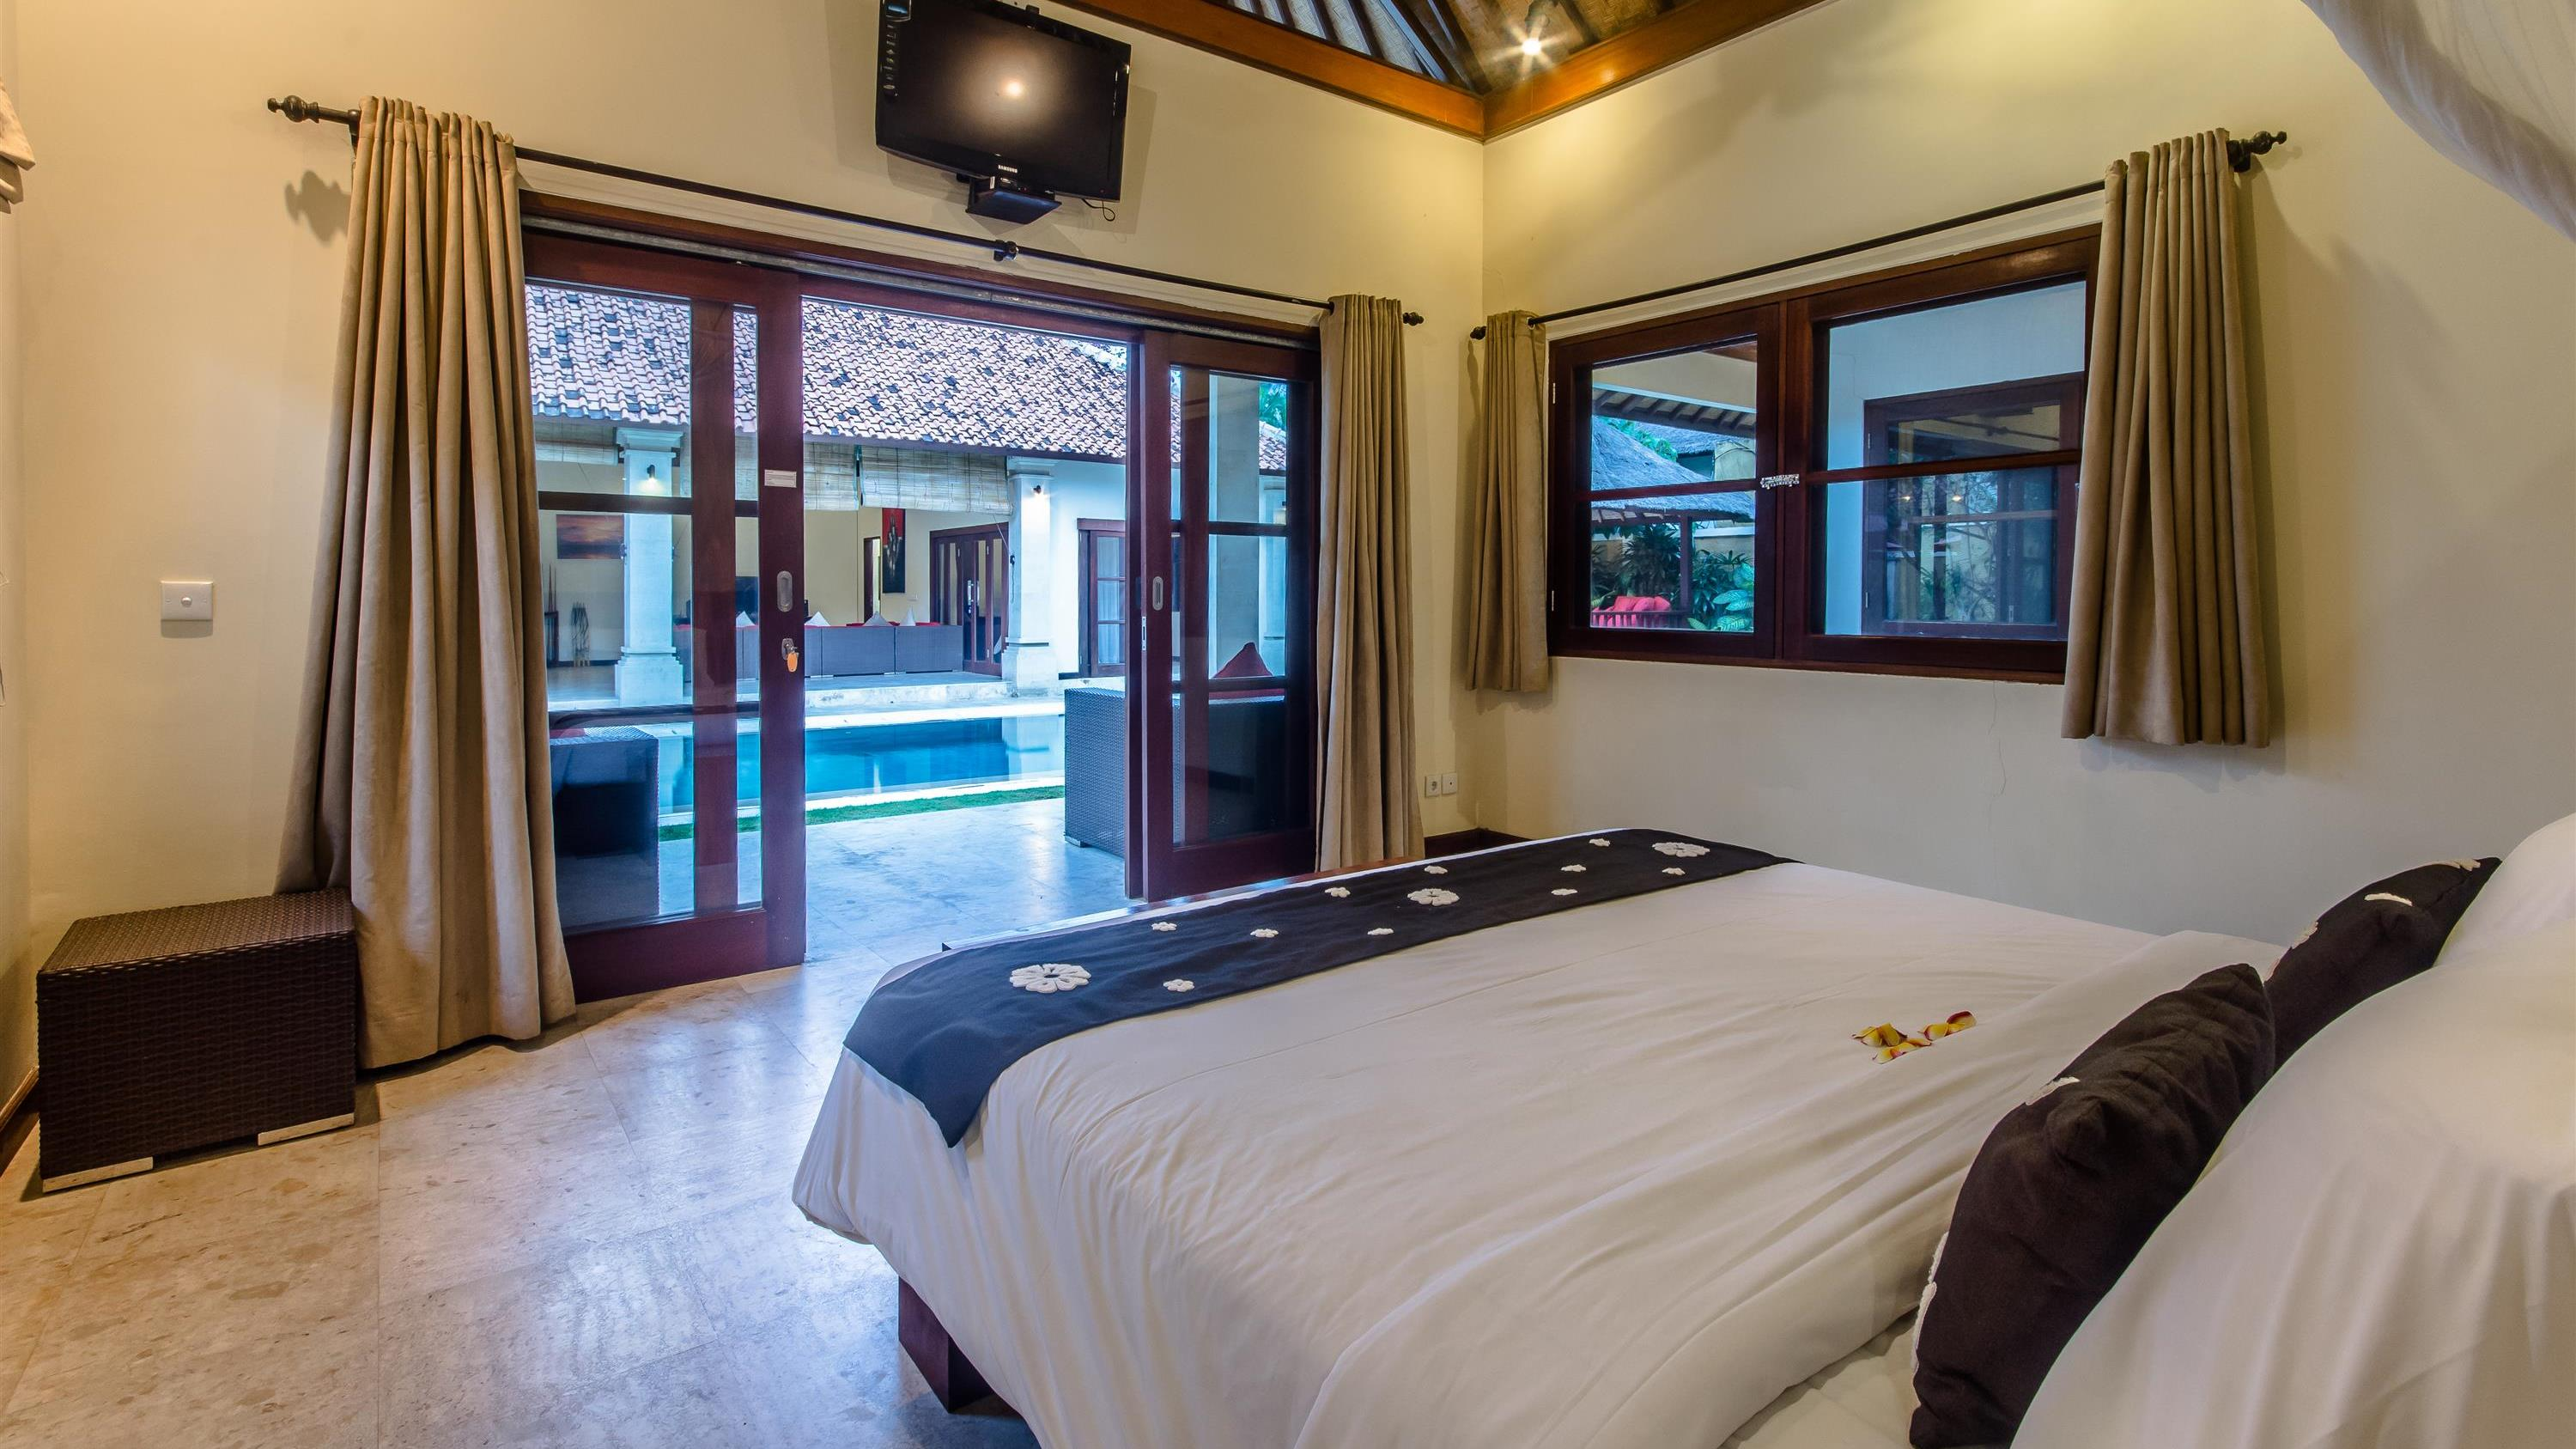 Bedroom with Pool View - Villa Santi - Seminyak, Bali